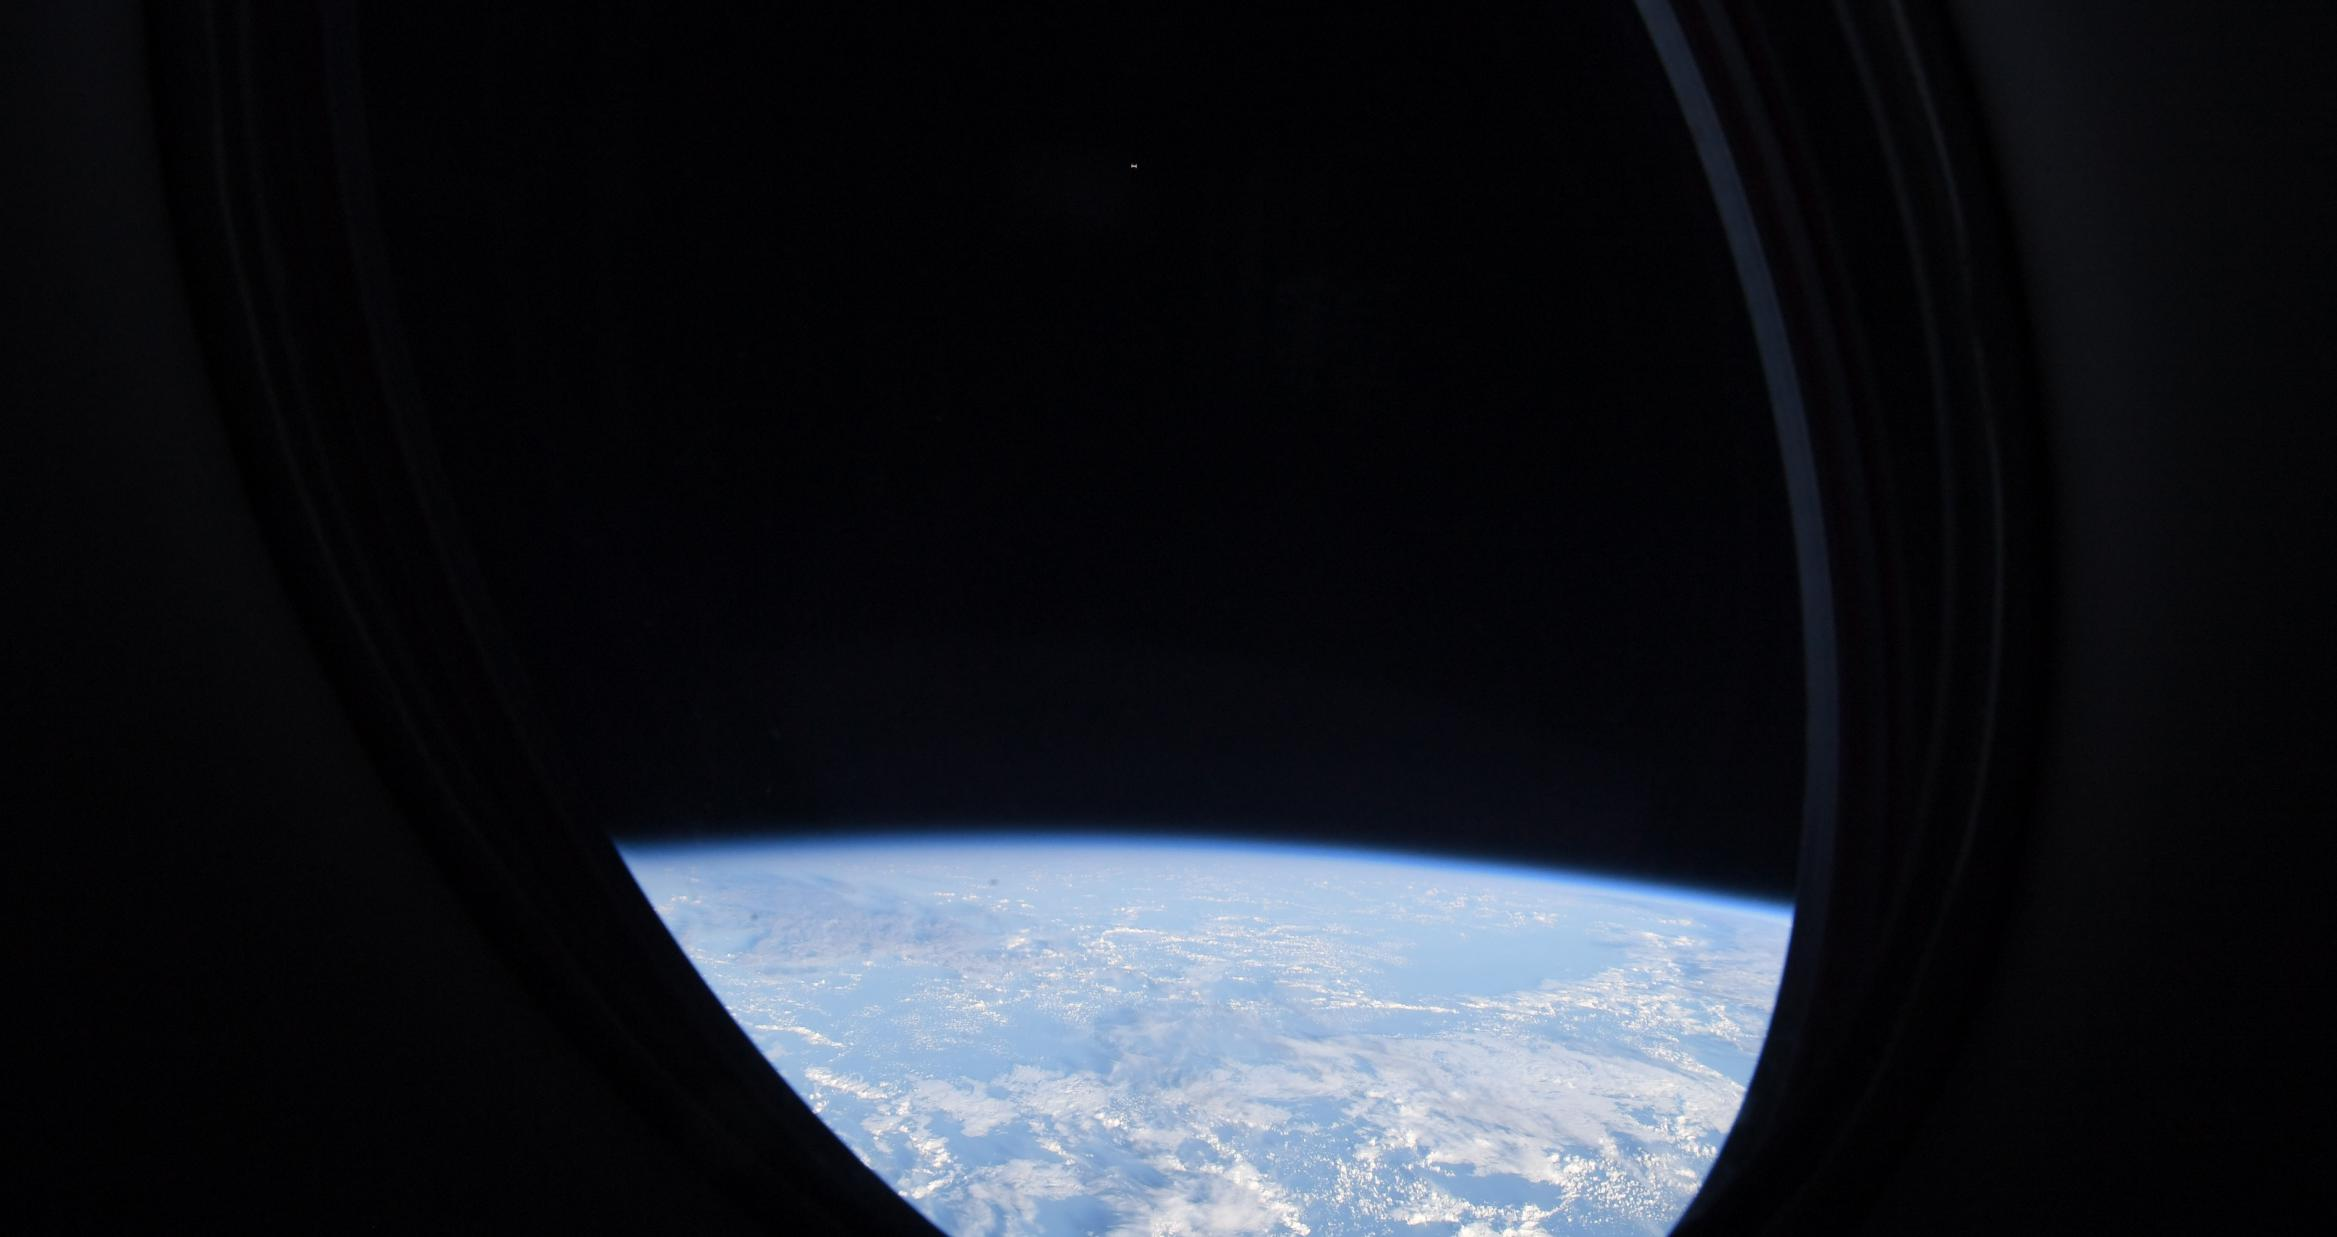 Crew-2 Crew Dragon C206 orbit ops 042421 (Thomas Pesquet – ESA) ISS window view 2 crop (c)